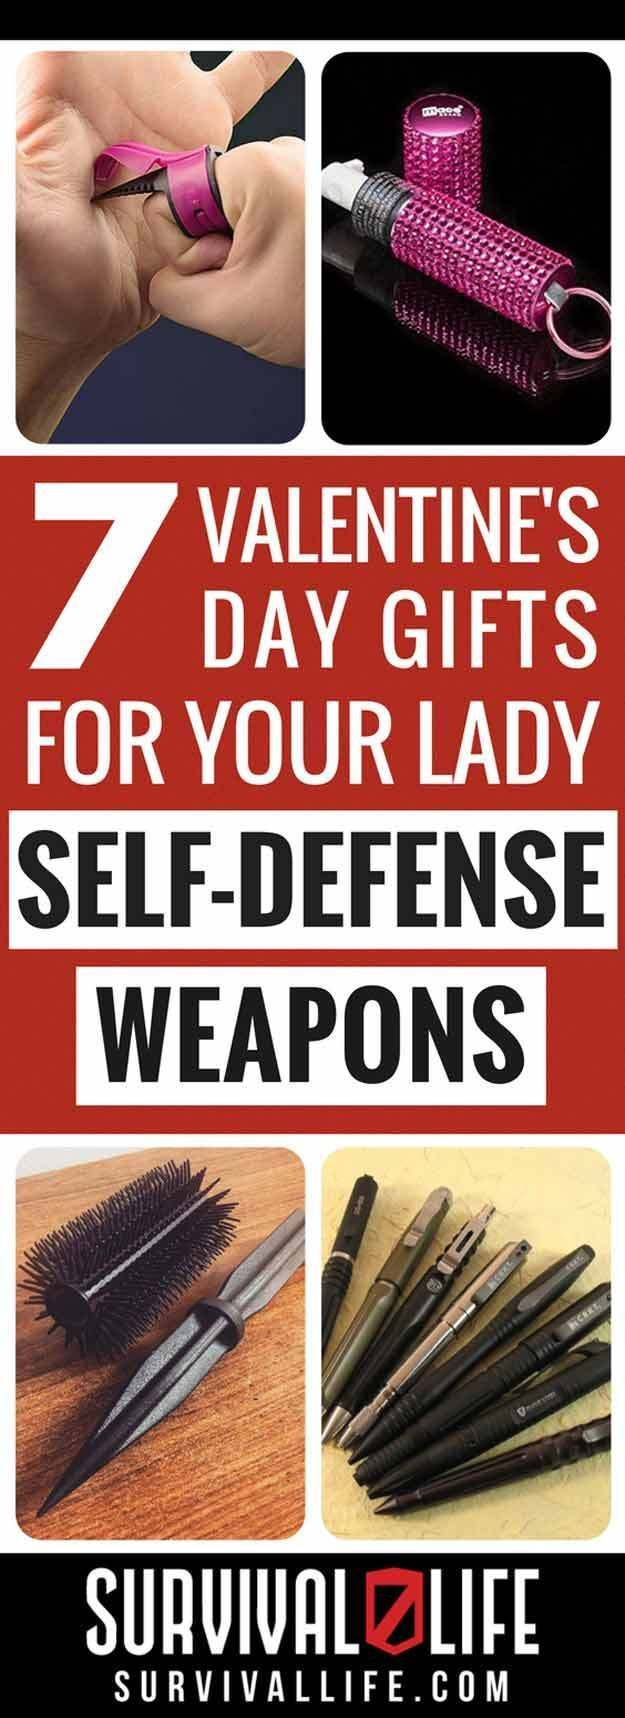 Valentine's Day Gifts For Her | Self-Defense Weapons For Women | Cool and Unique Tools for your Love Ones - Survival Life